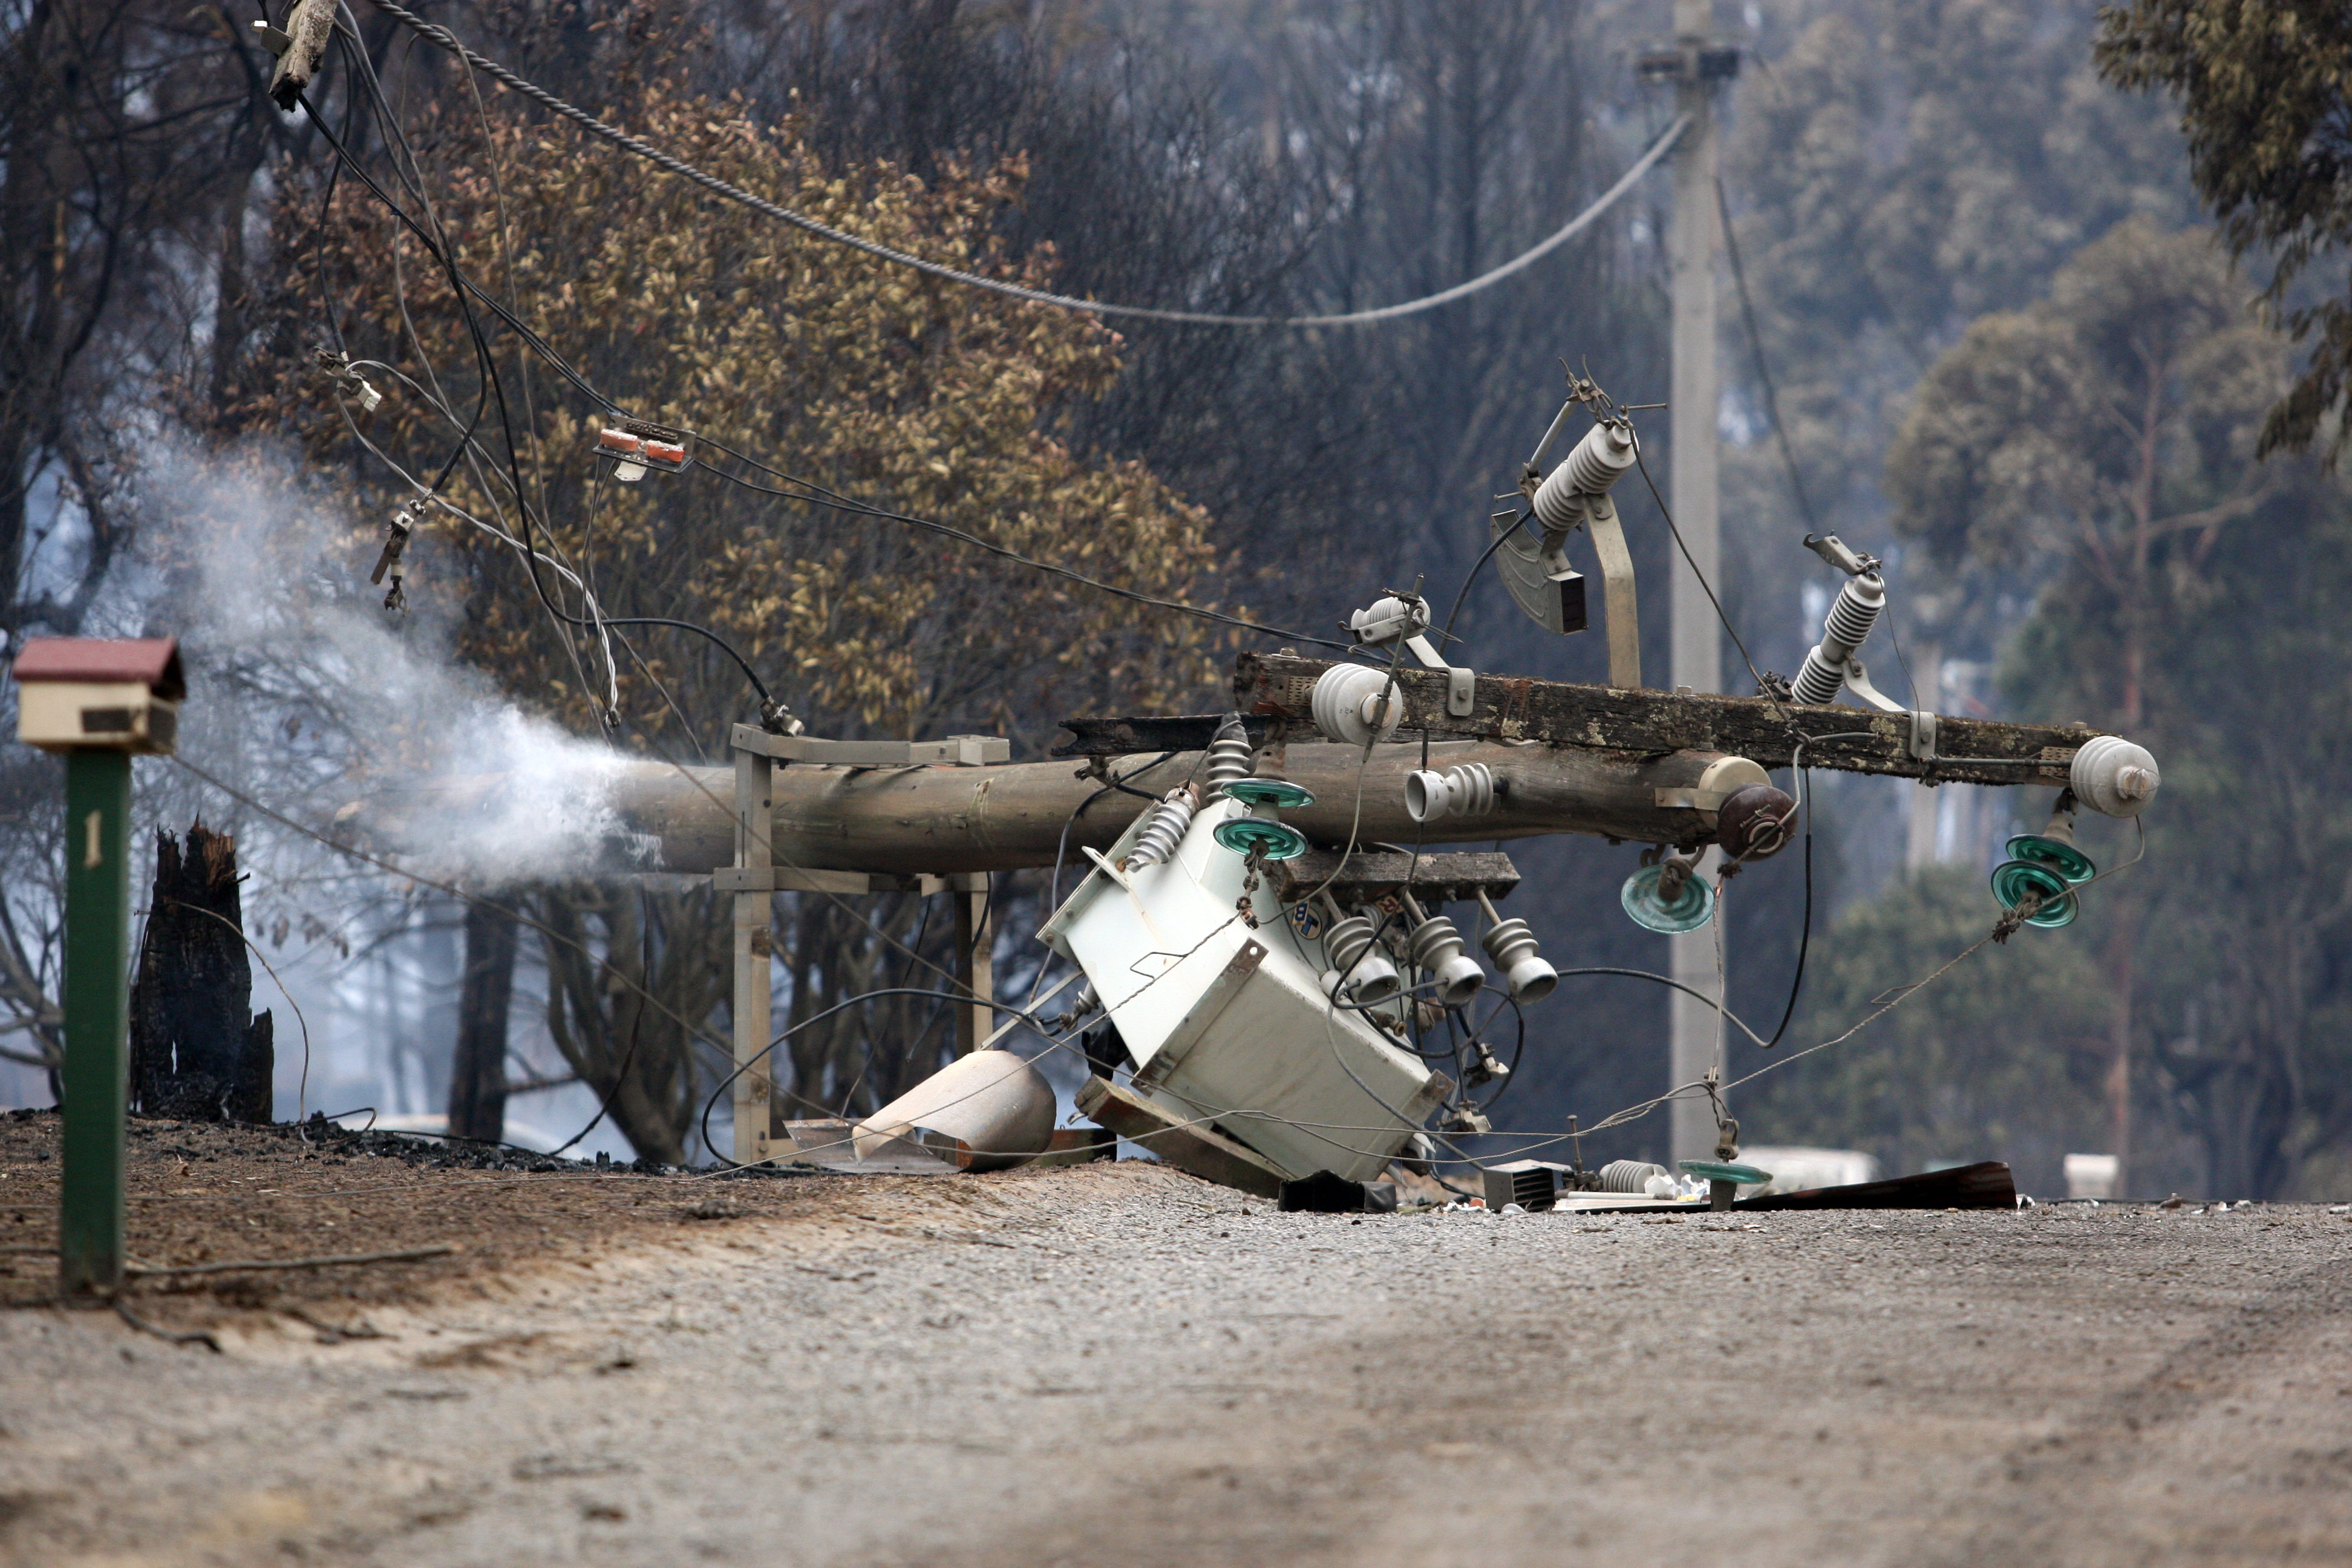 Power pole with transformer collapsed across a road following a bushfire.